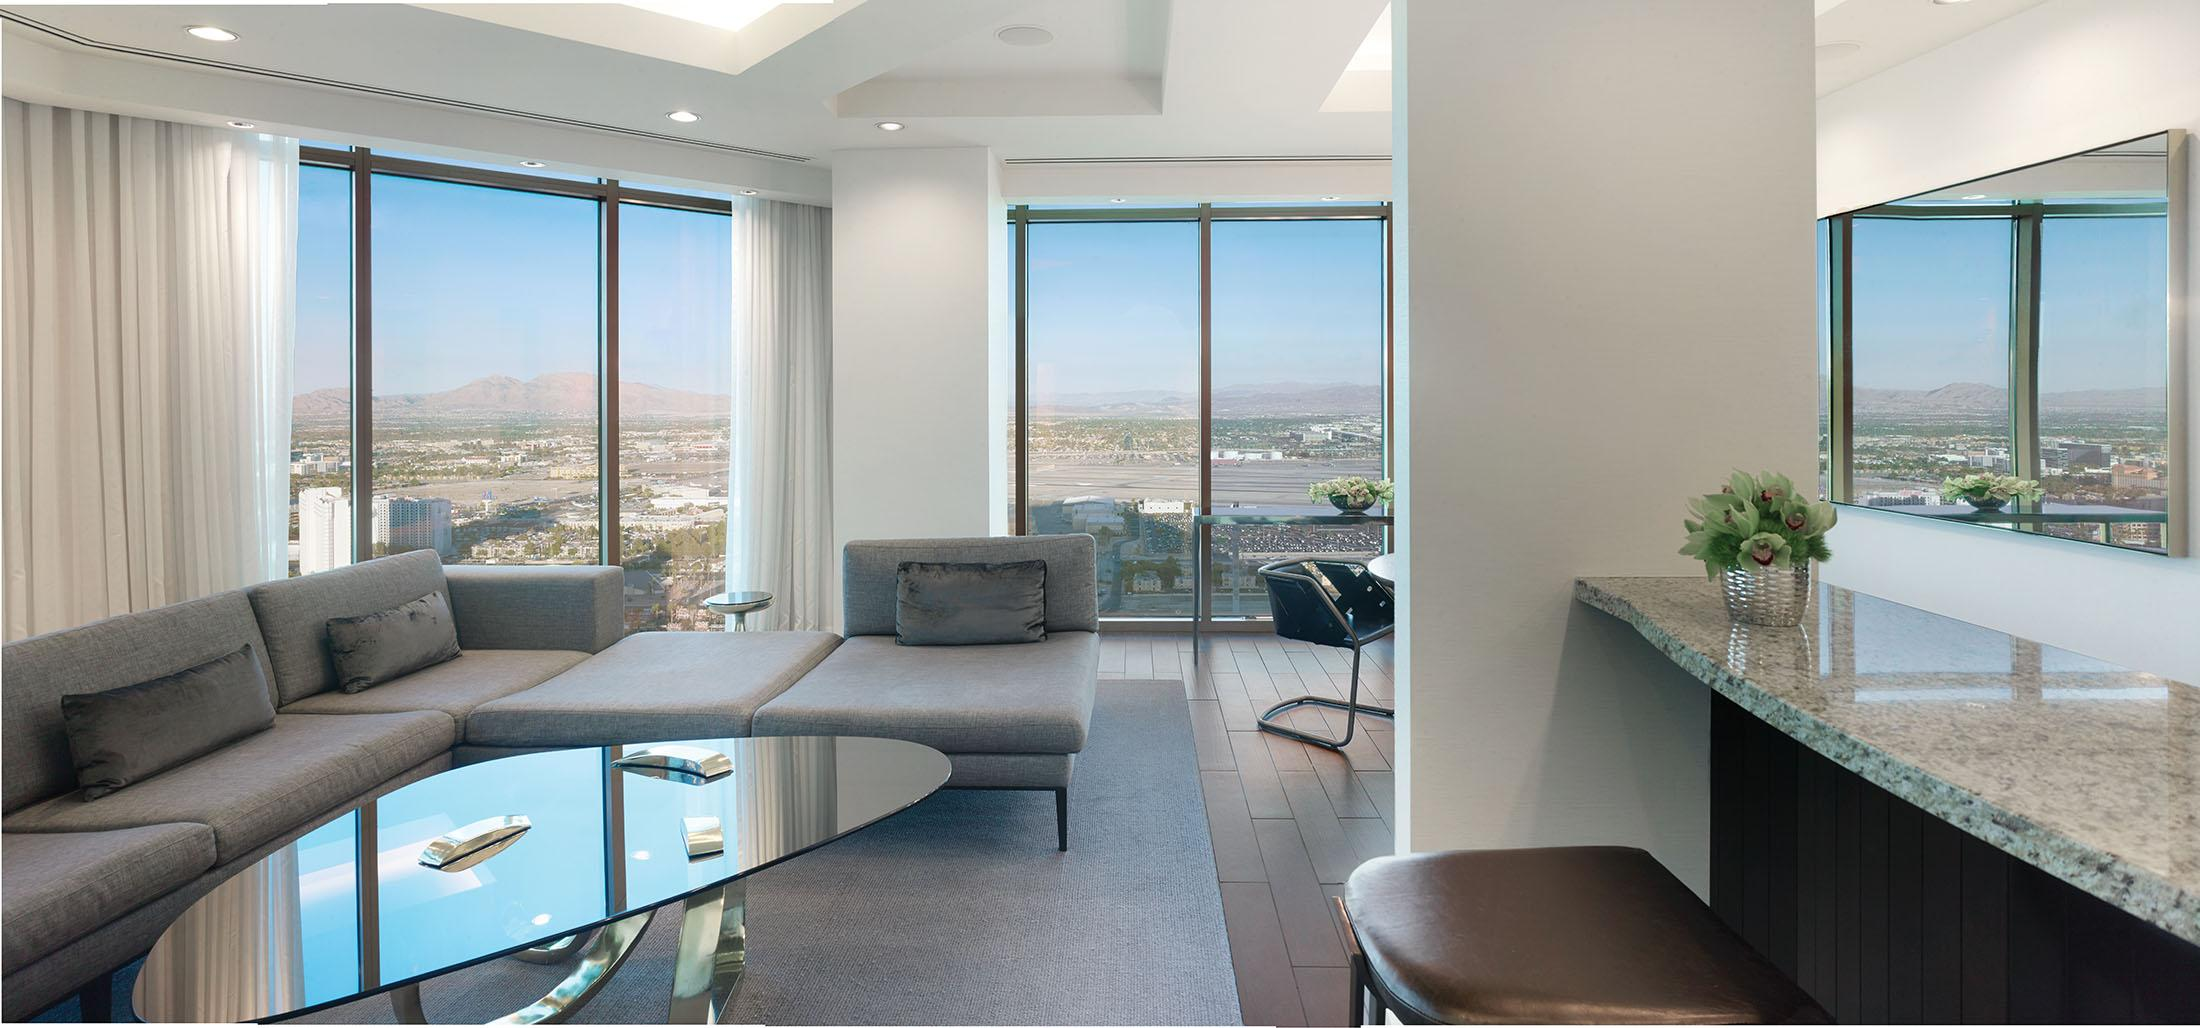 Living room and kitchen suite with panoramic views of Las Vegas